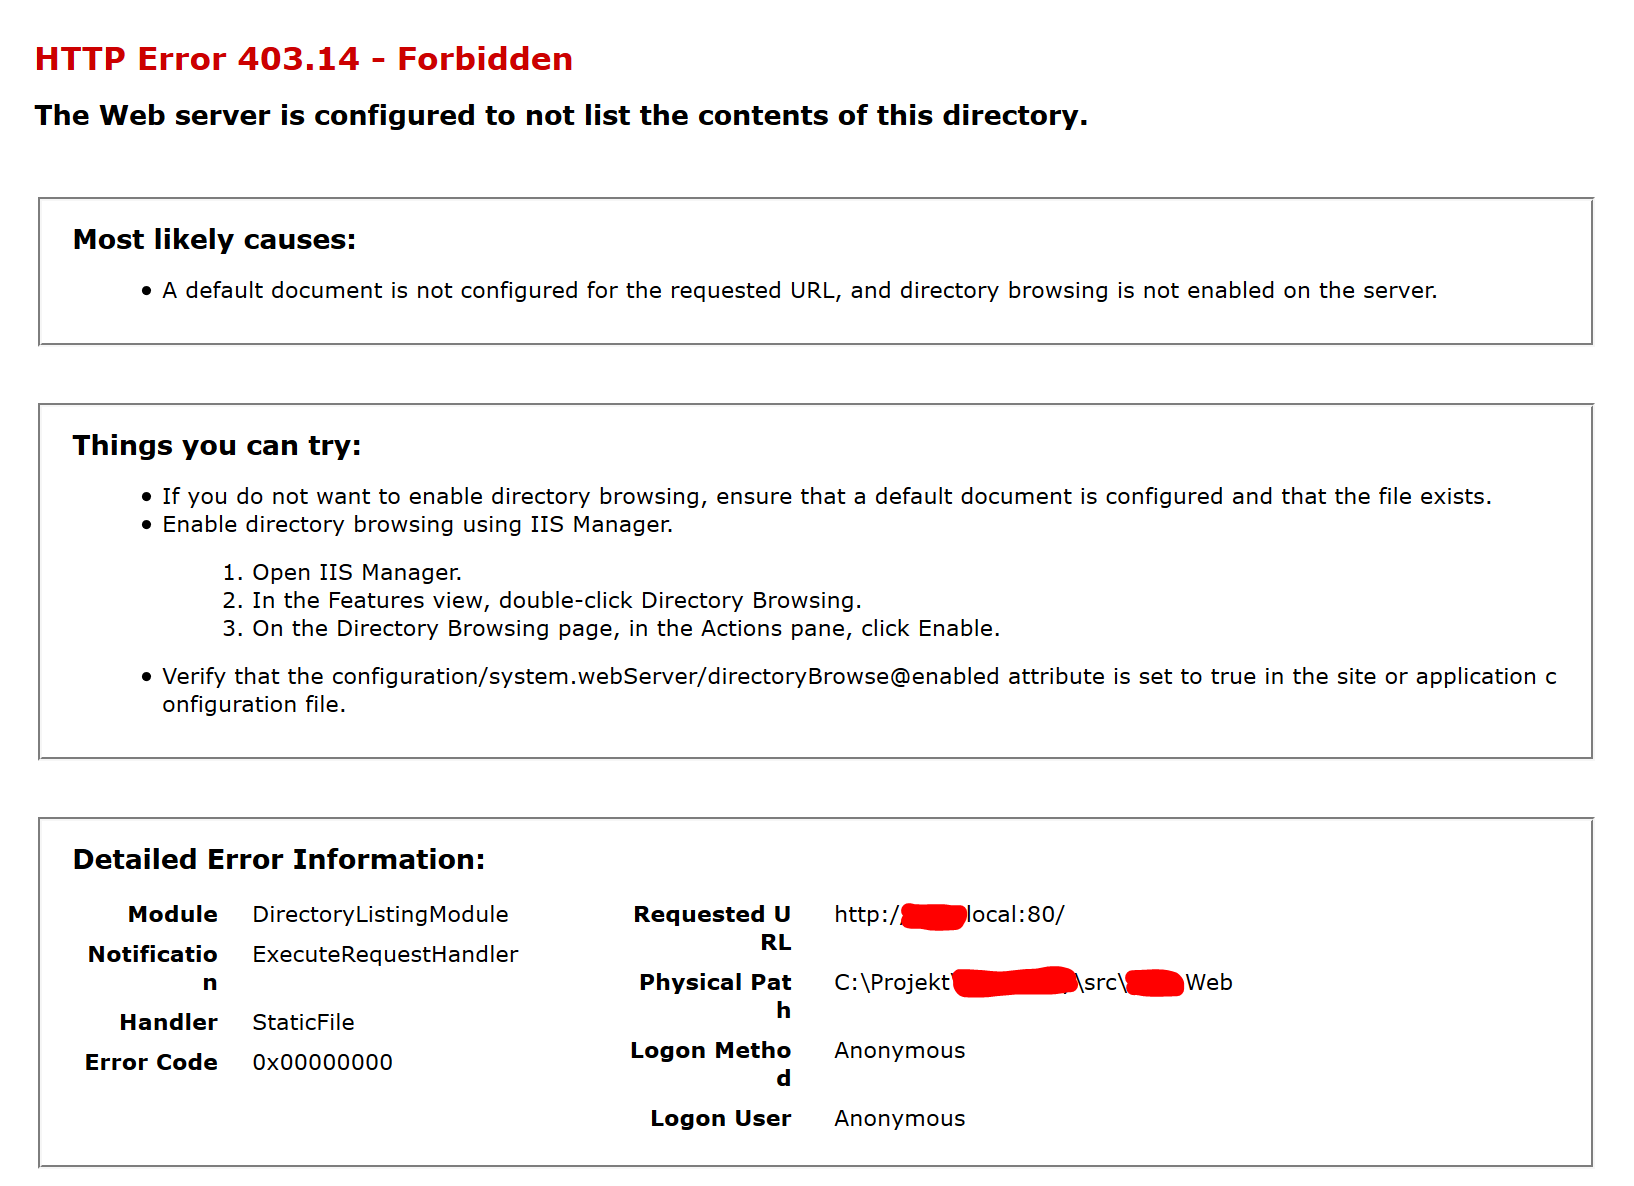 EPiServer website view mode giving a 403.14 Forbidden HTTP Error message.